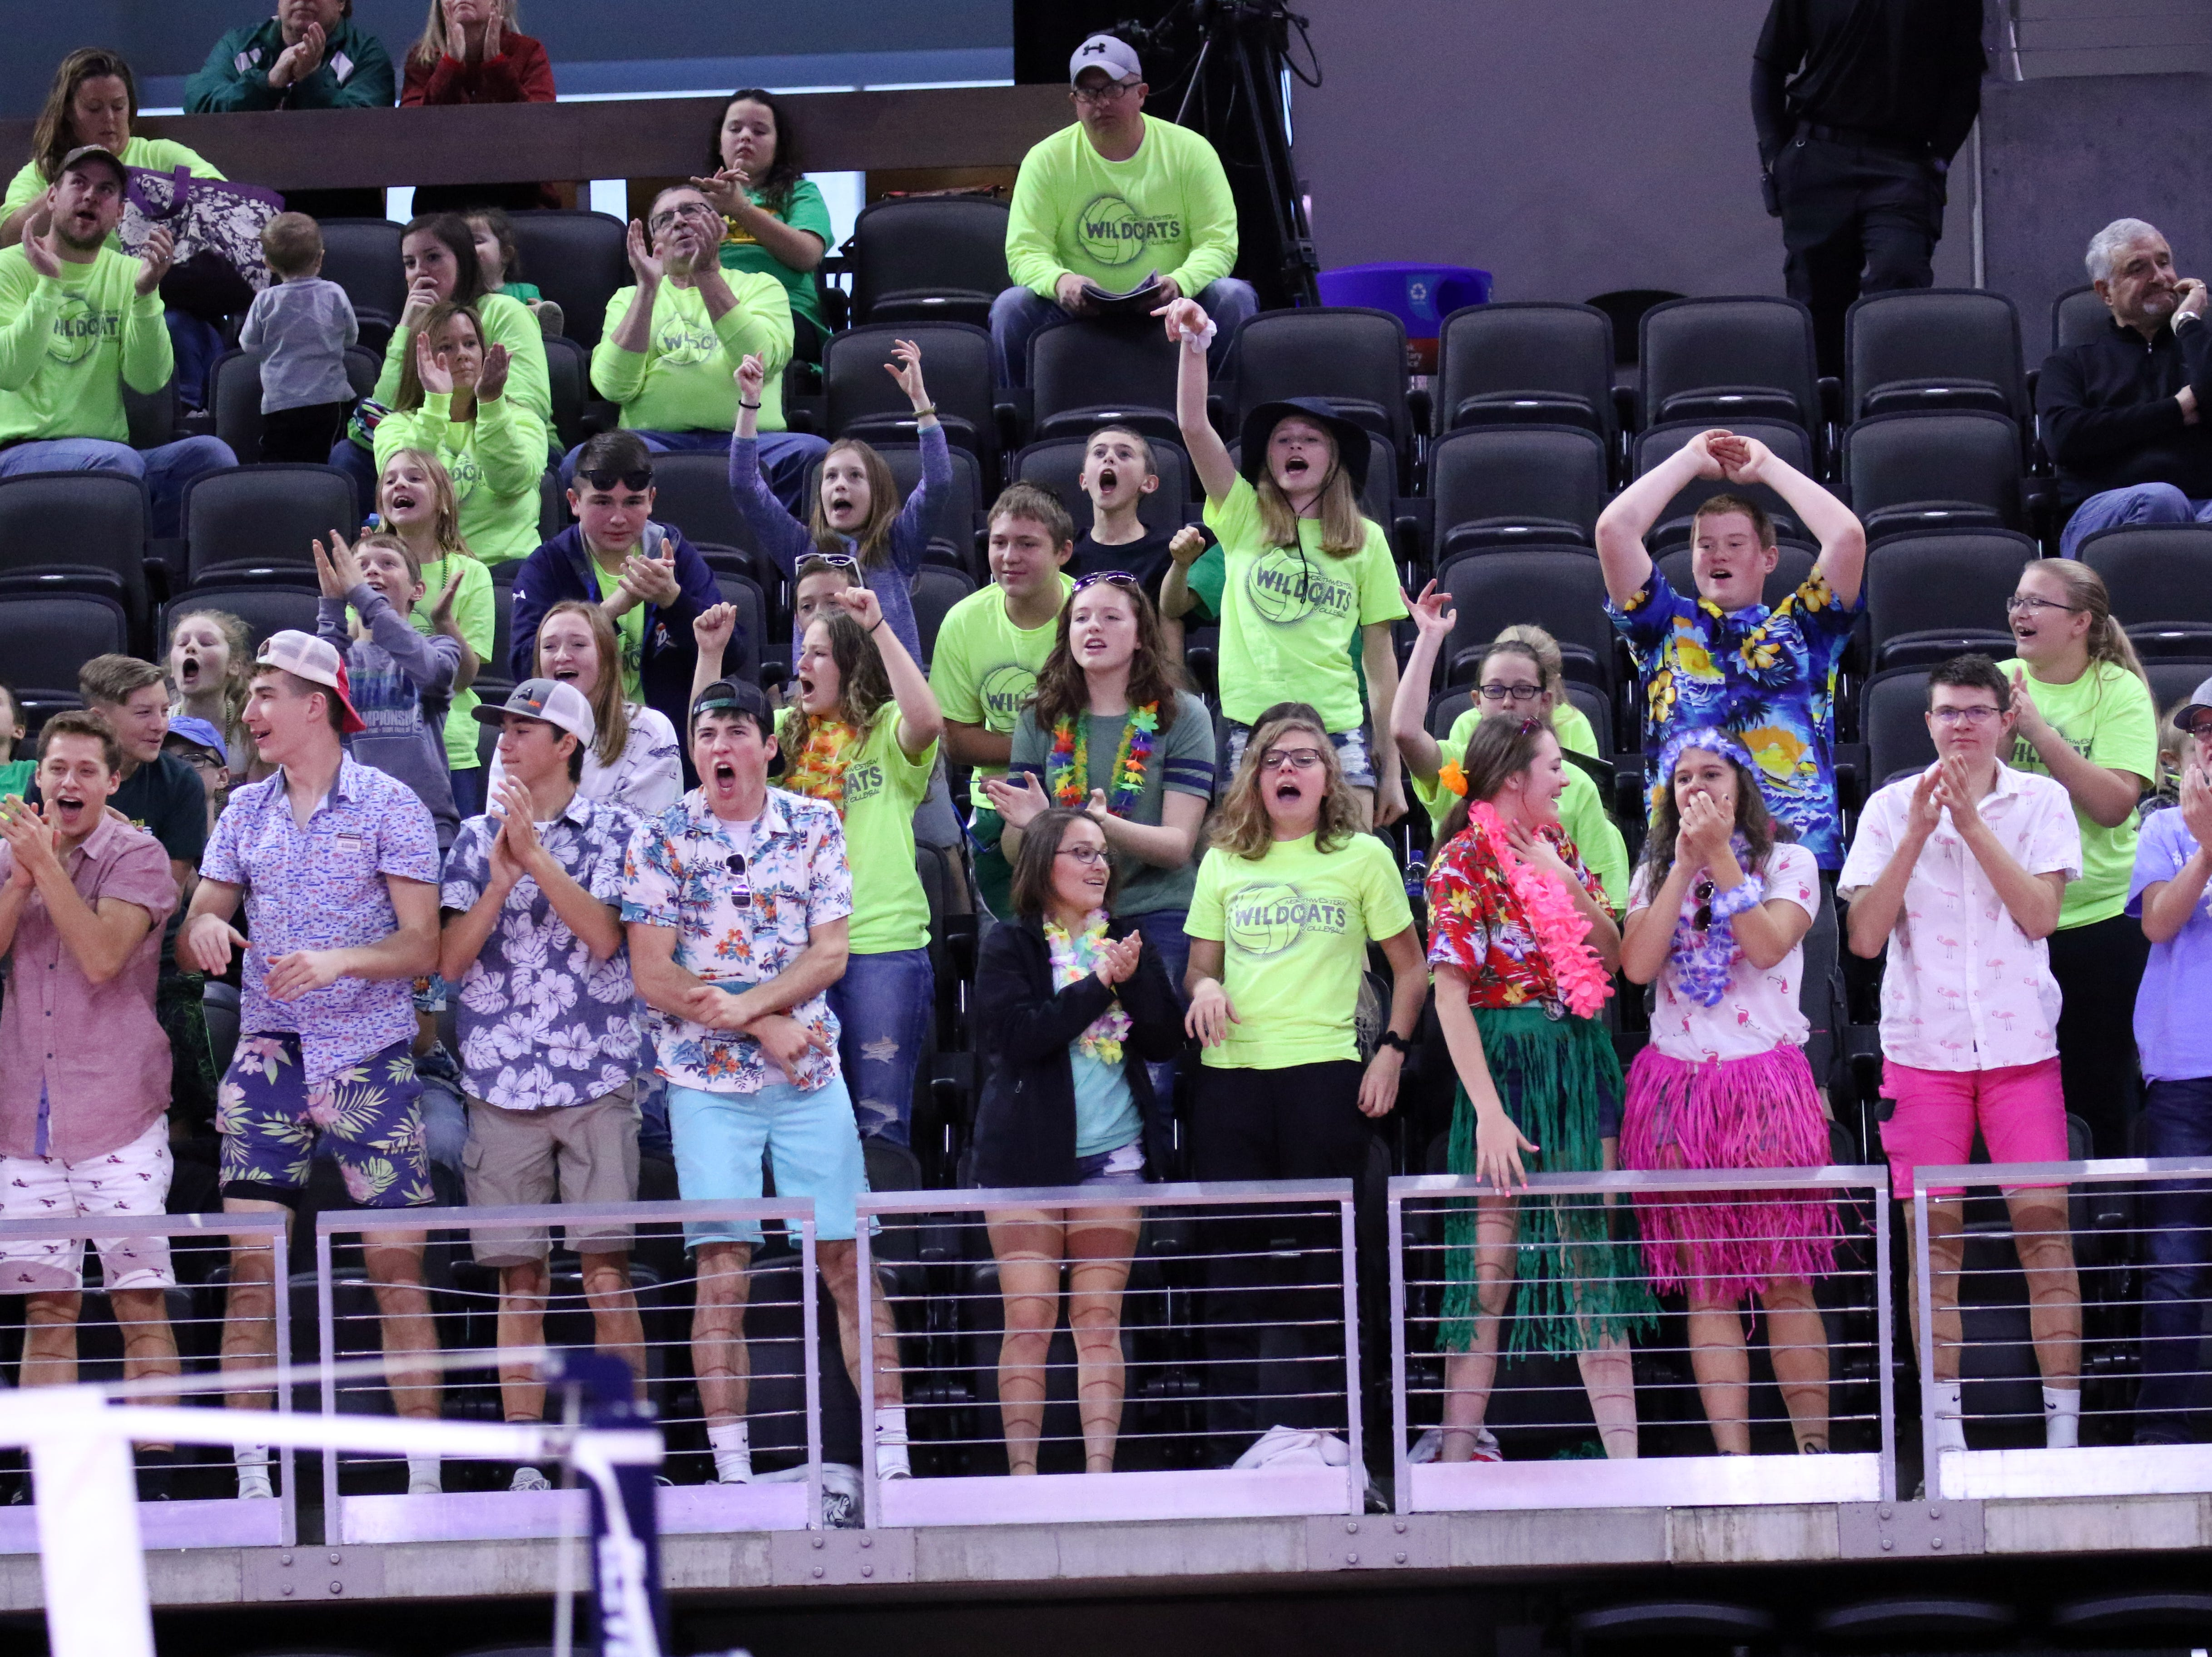 The Northwestern student section cheers for their team during Thursday afternoon's match against Kimball-White Lake in Sioux Falls.